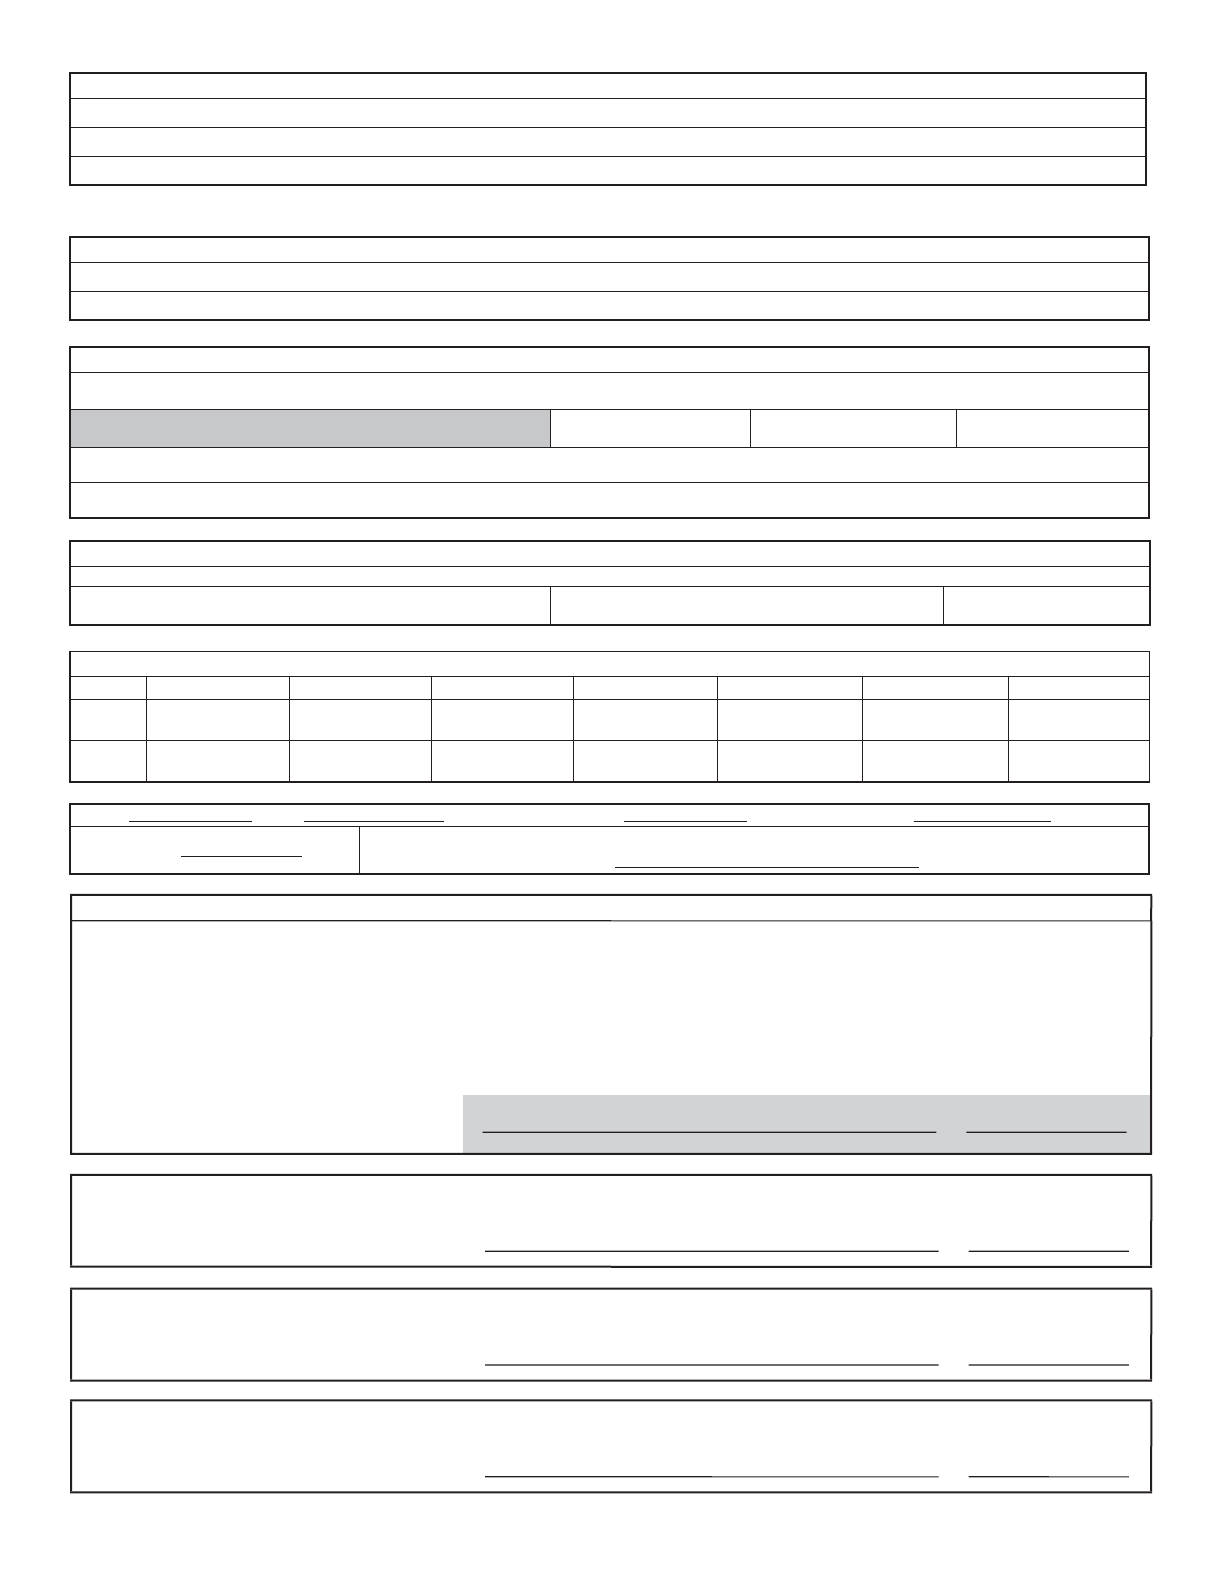 Free Printable Bath And Body Works Job Application Form Page 2